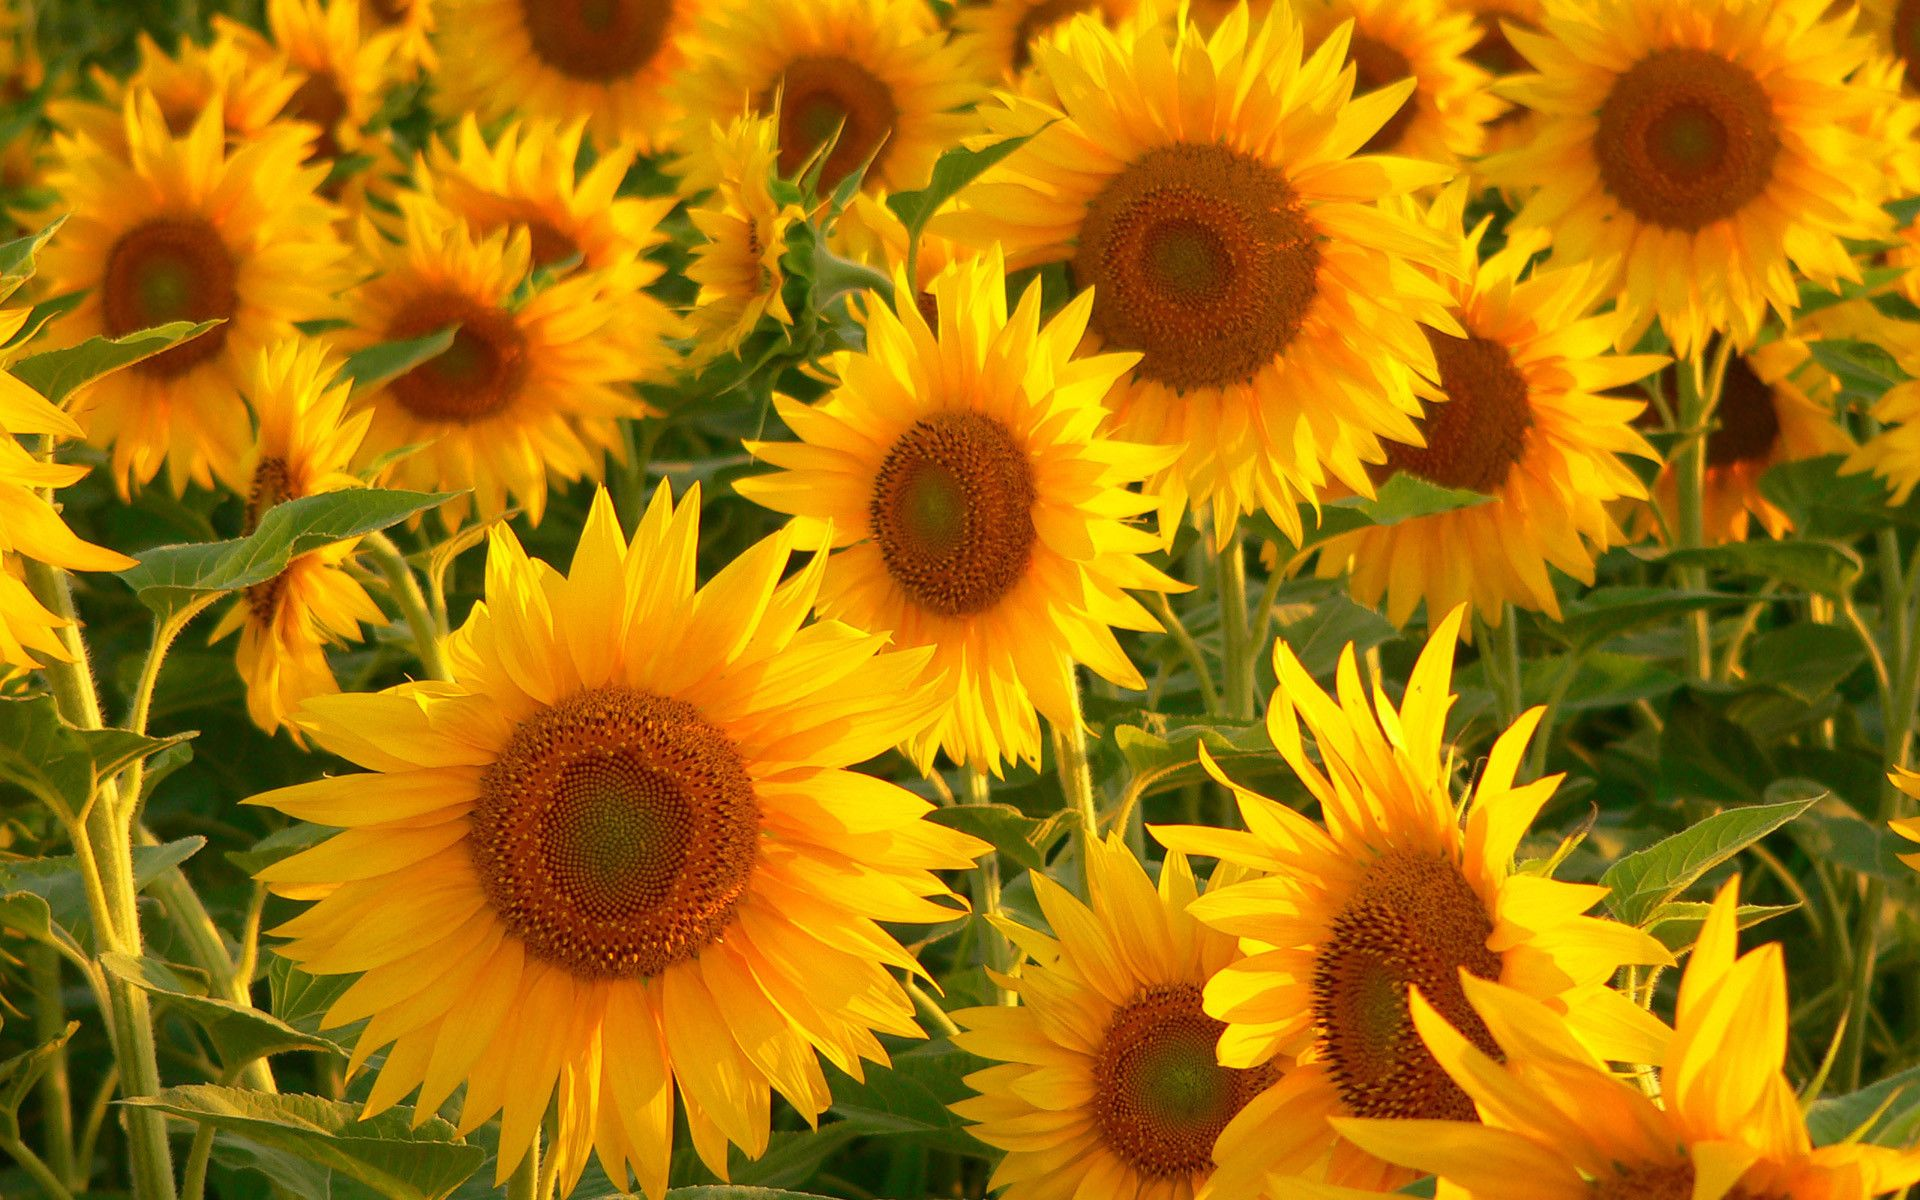 Yellow Flower Aesthetic Computer Wallpapers - Top Free ...